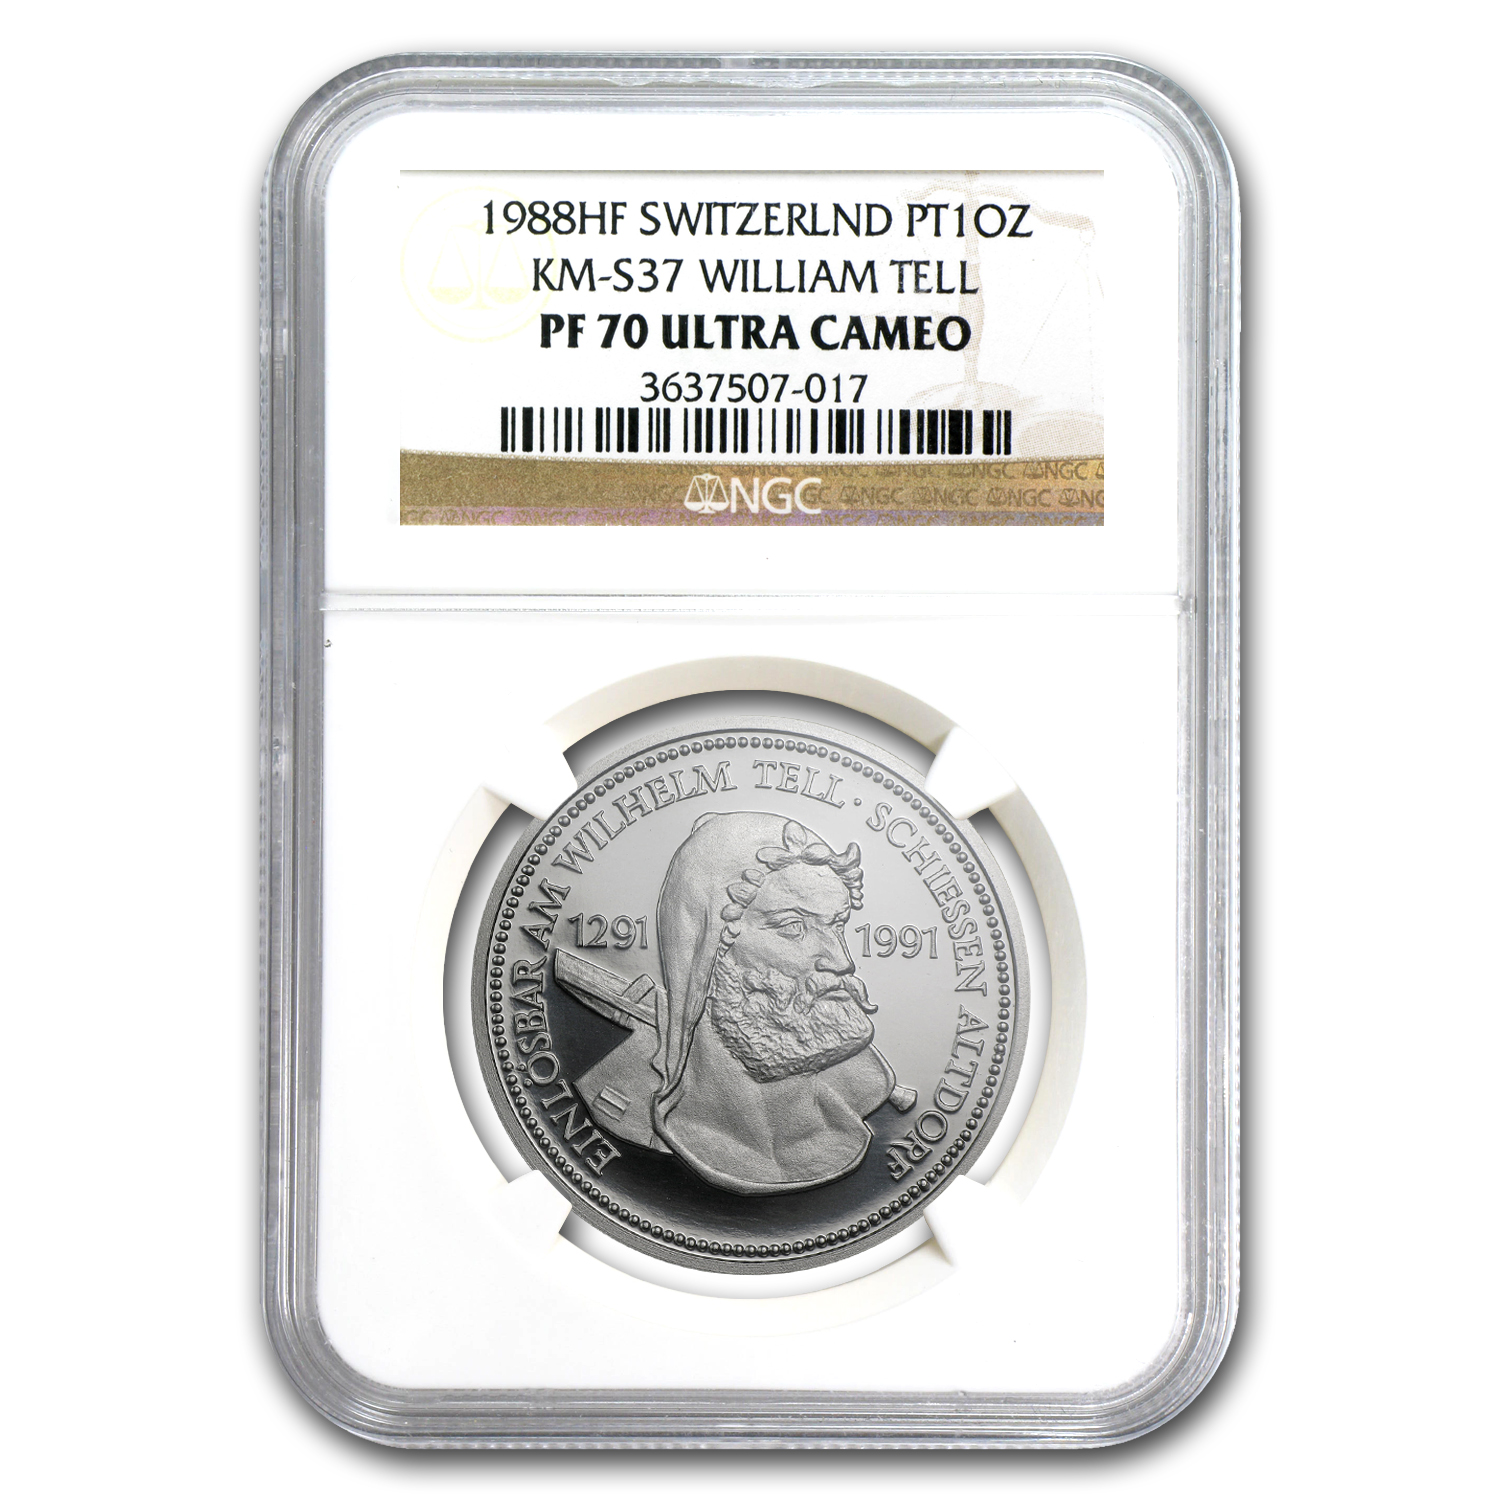 1988 Switzerland 1 oz Proof Platinum William Tell PF-70 NGC